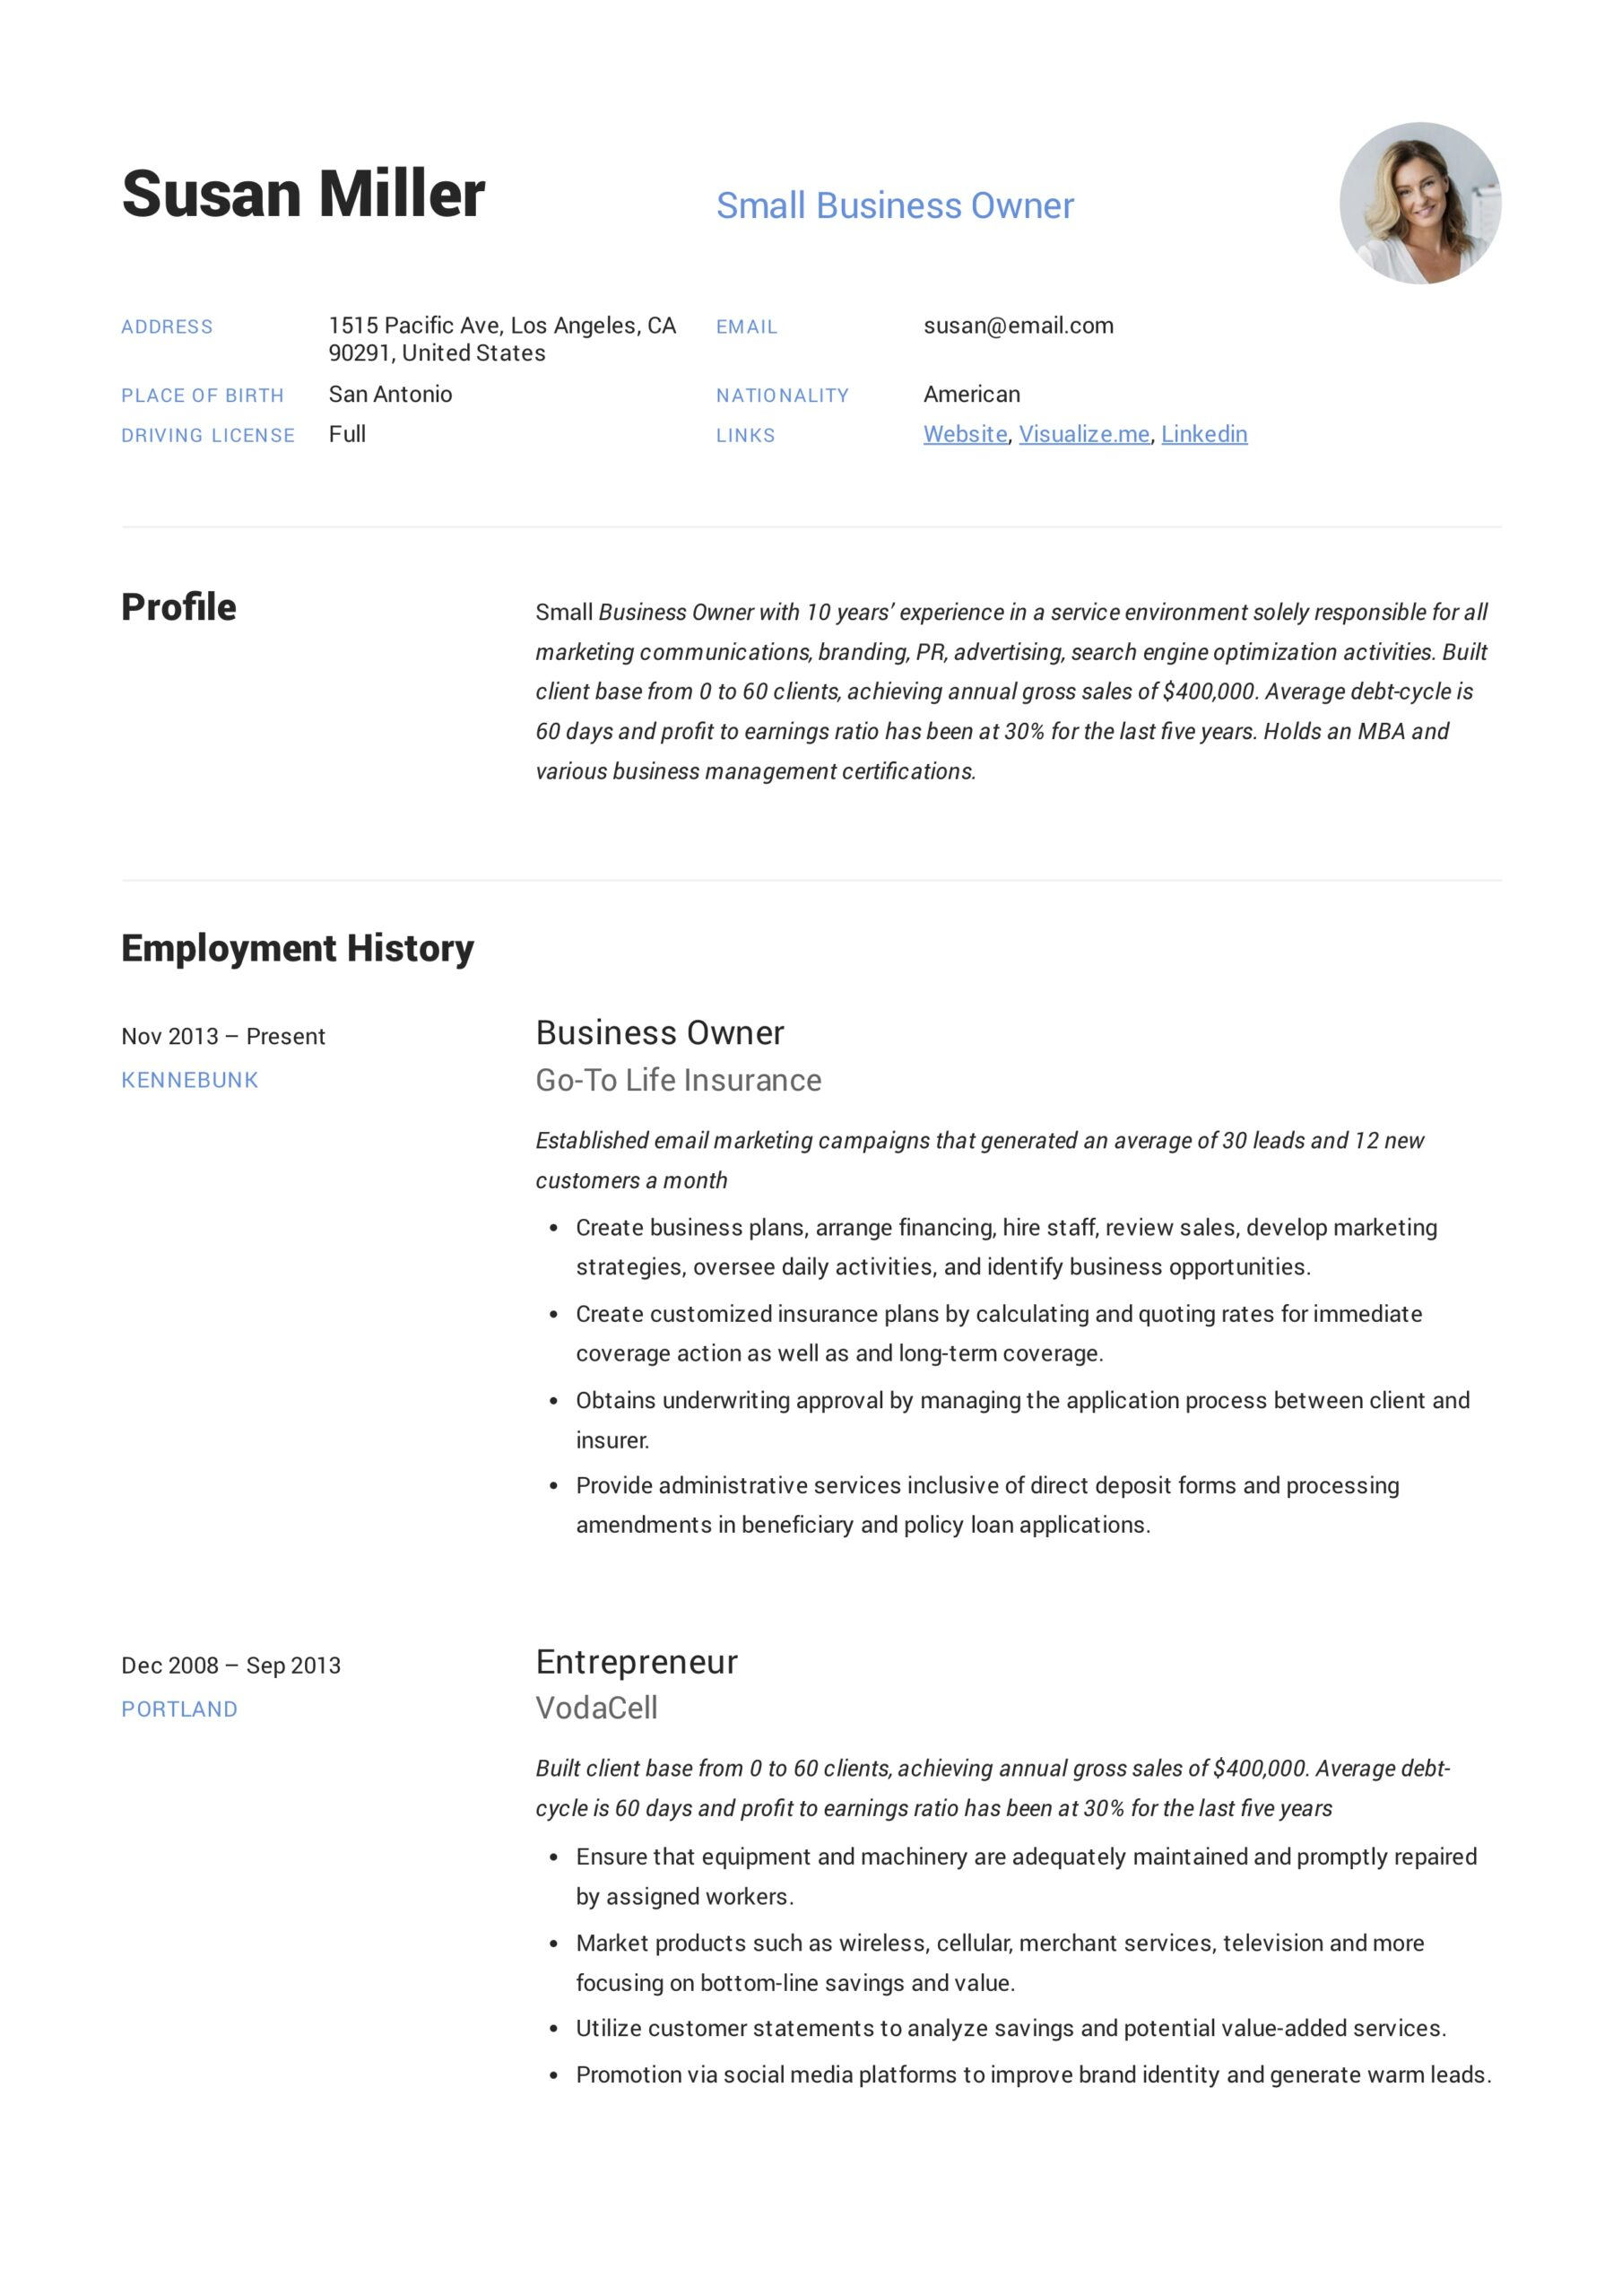 small business owner resume guide examples pdf job description example freelance boeing Resume Business Owner Job Description Resume